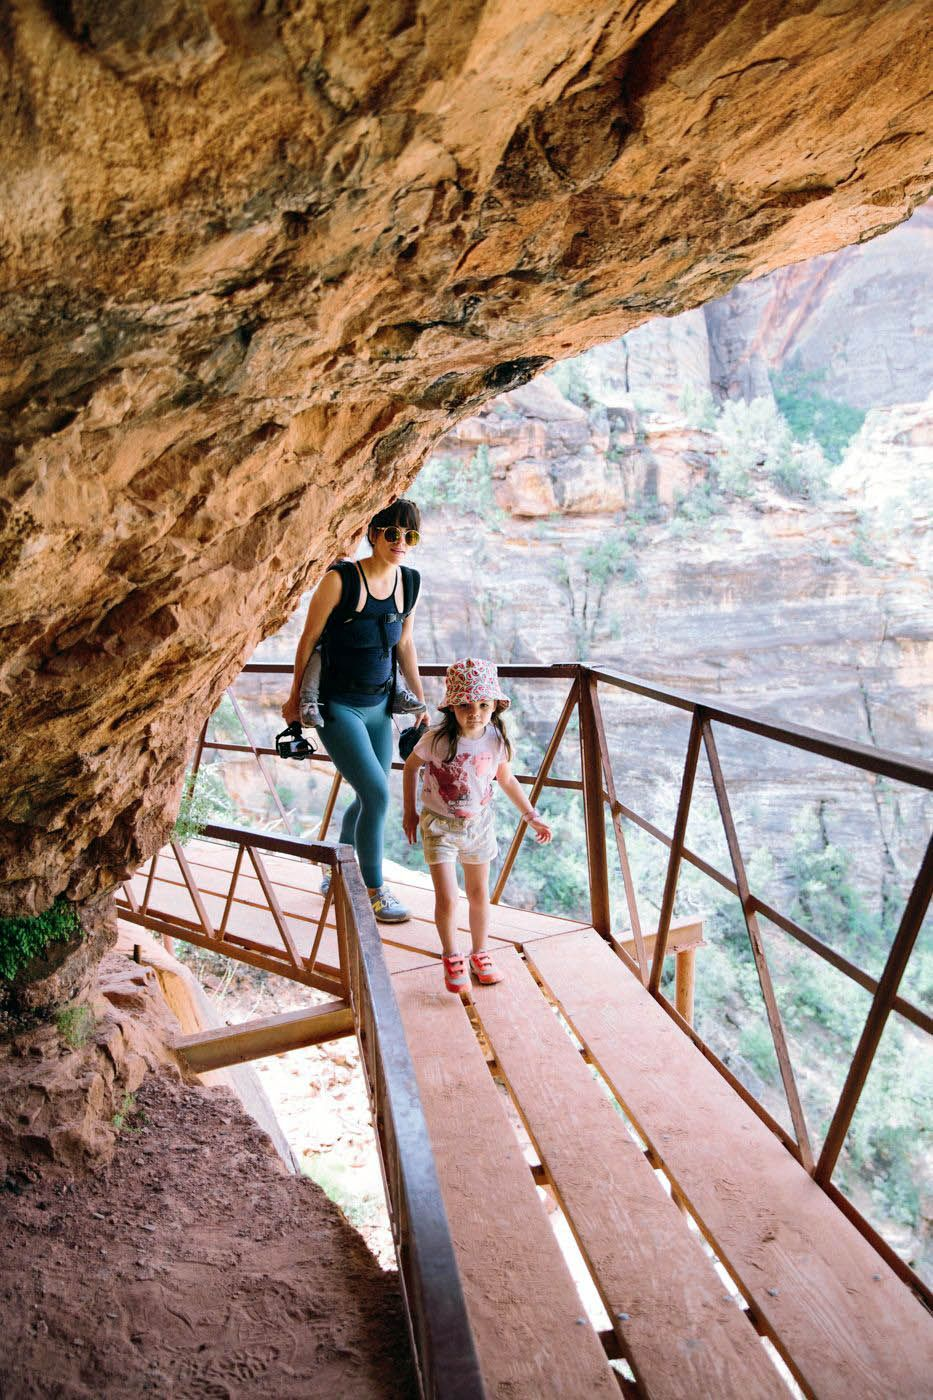 5 Of The Most Effective Cost Free Outdoor Camping Near Zion